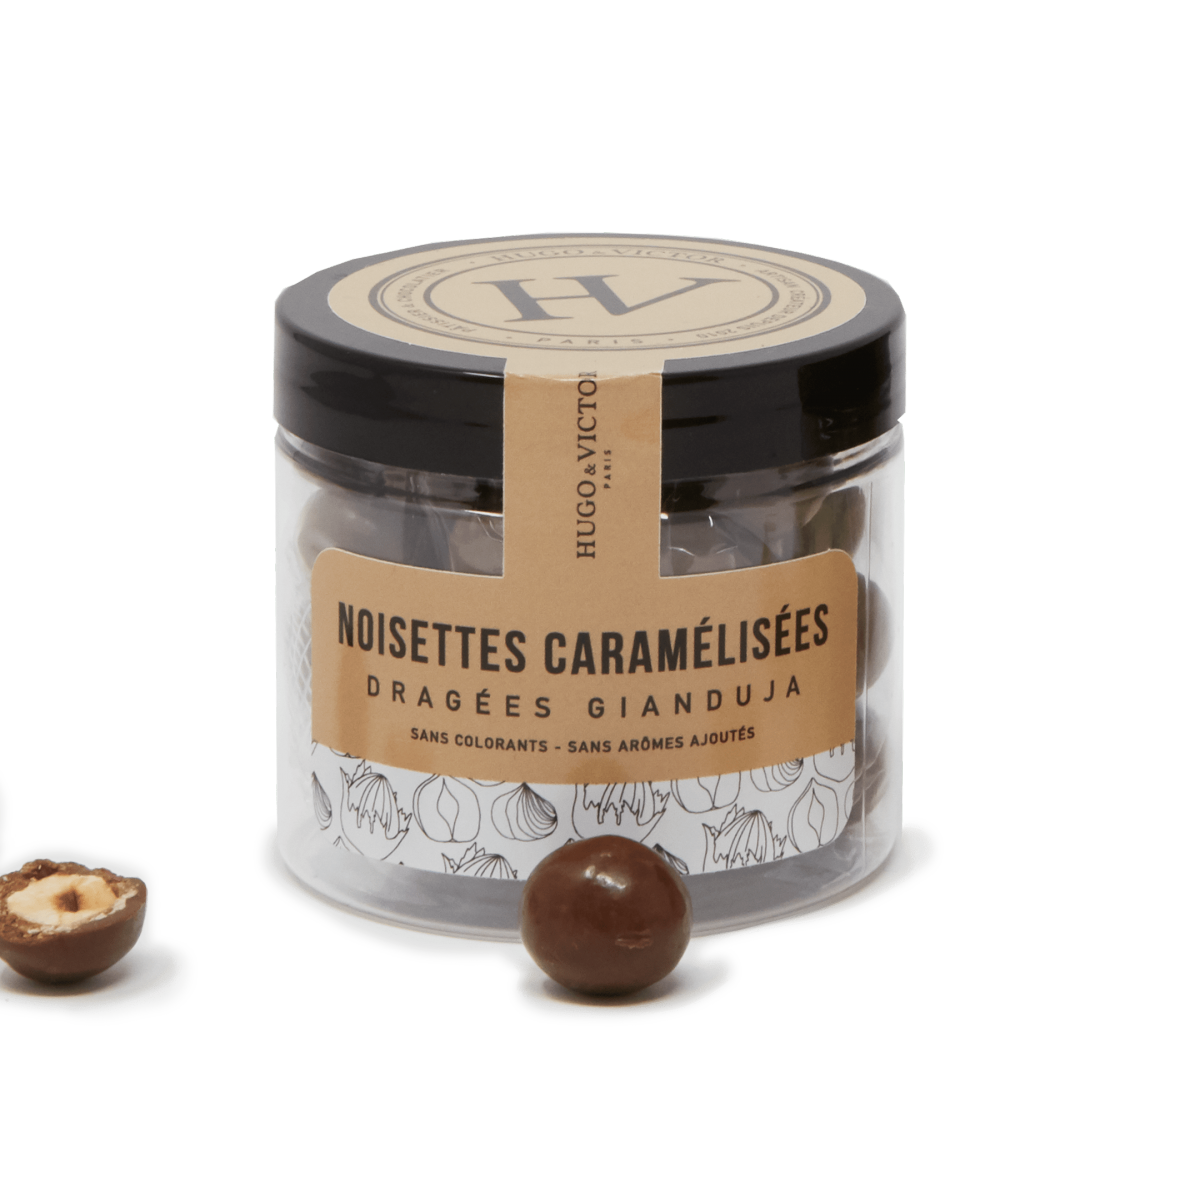 Dragées Gianduja